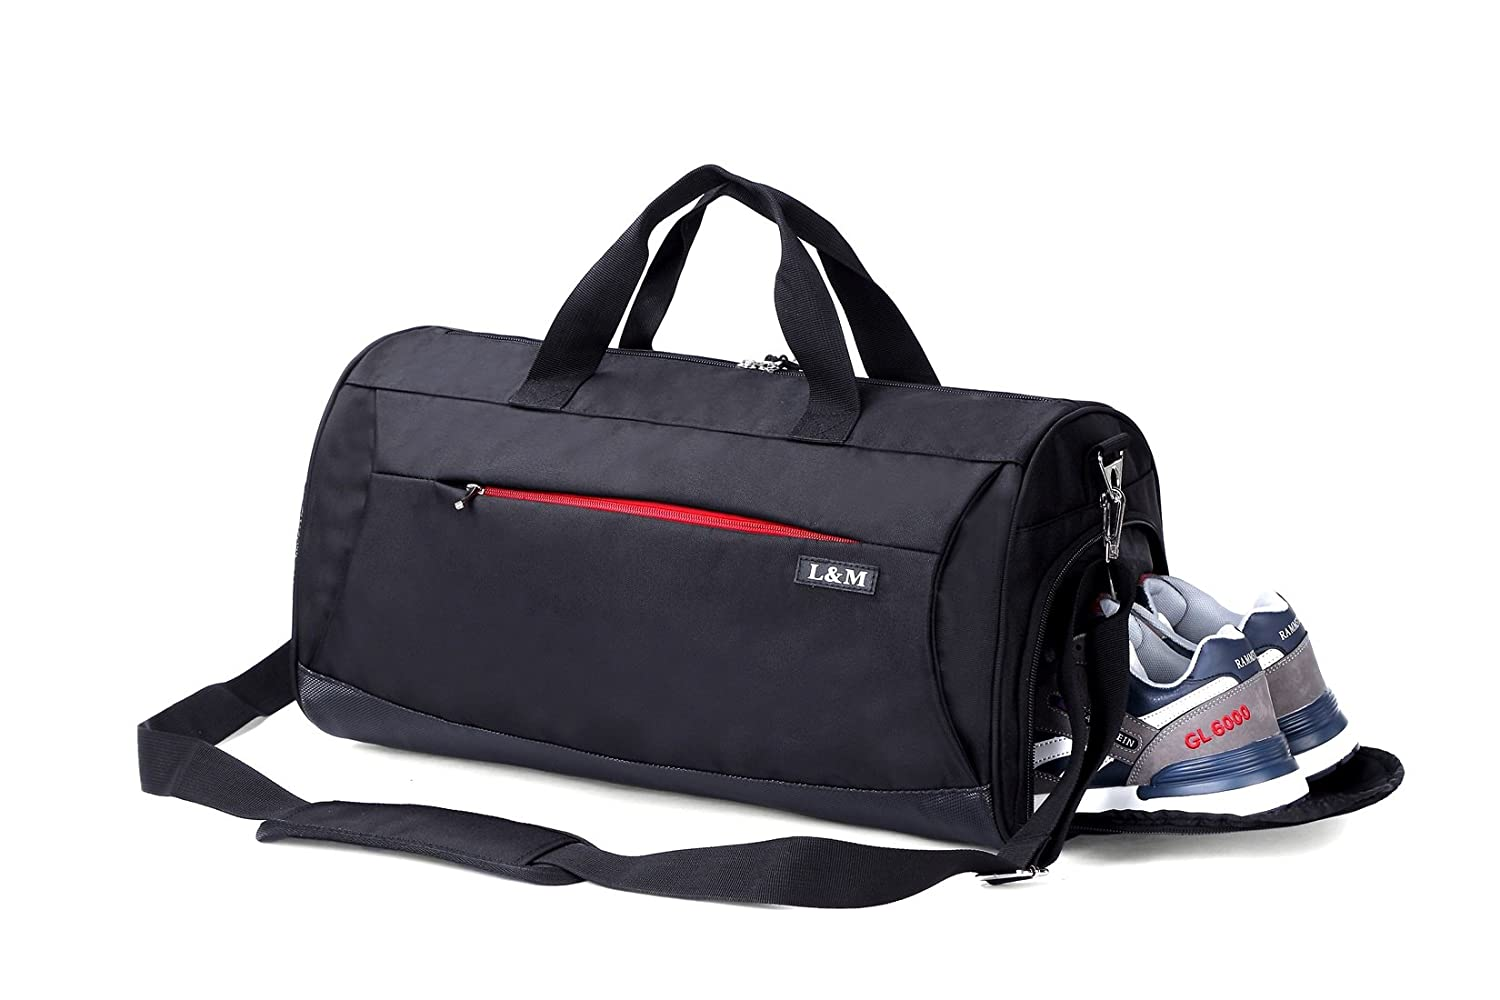 cff8ceae66 Amazon.com  AiiGoo Sports Gym Bag Waterproof with Shoes Compartment Large  Capacity Travel Duffel Bag (Black)  Sports   Outdoors